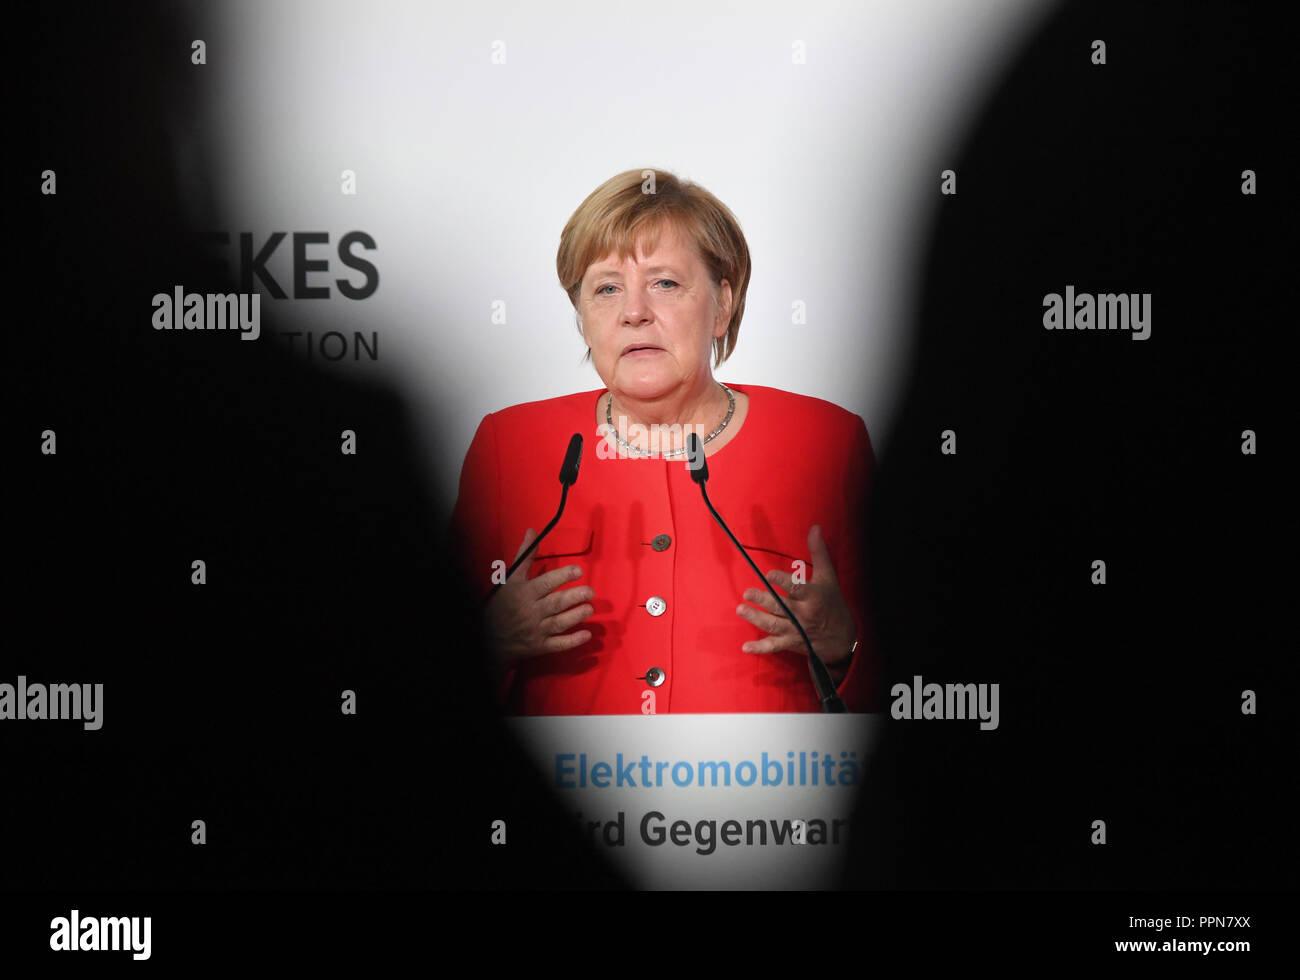 2a537ca57fb3 berlin-germany-27-september-2018 -berlin-chancellor-angela-merkel-cdu-speaks-at-the-symposium-10-years-of-electromobility-future- becomes-present-on-the-euref ...